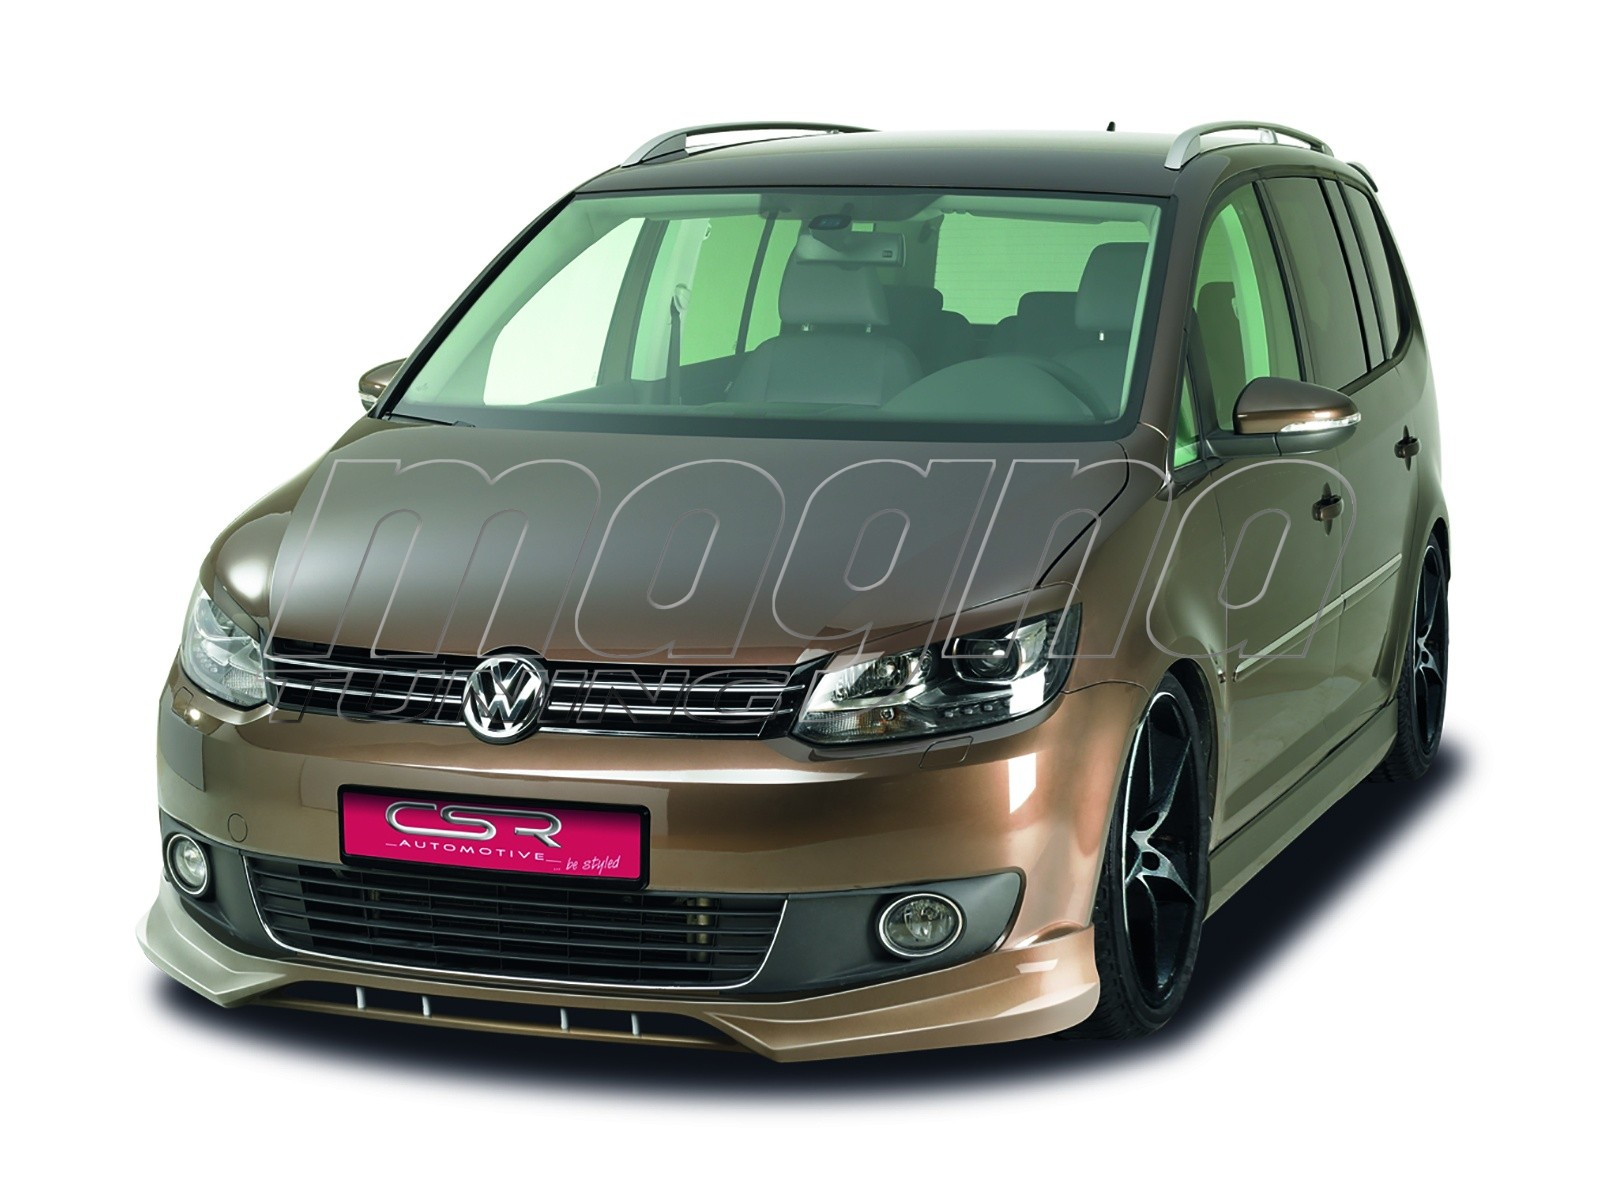 vw touran facelift n2 body kit. Black Bedroom Furniture Sets. Home Design Ideas